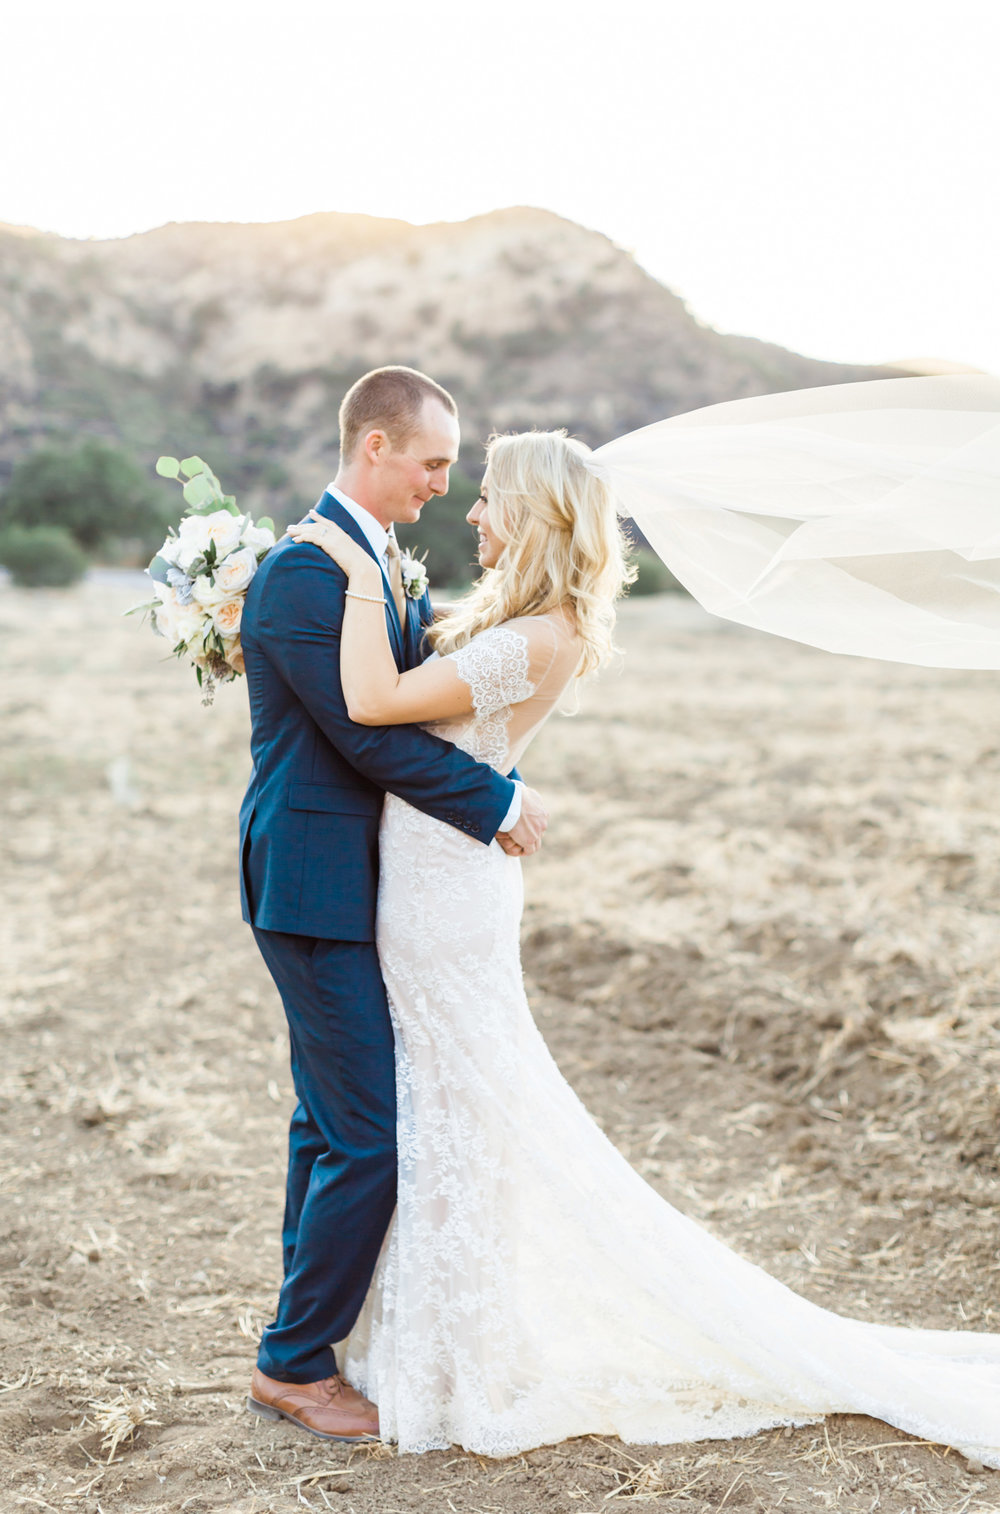 California-Wedding-Photographer-Style-Me-Pretty-Natalie-Schutt-San-Luis-Obispo_02.jpg